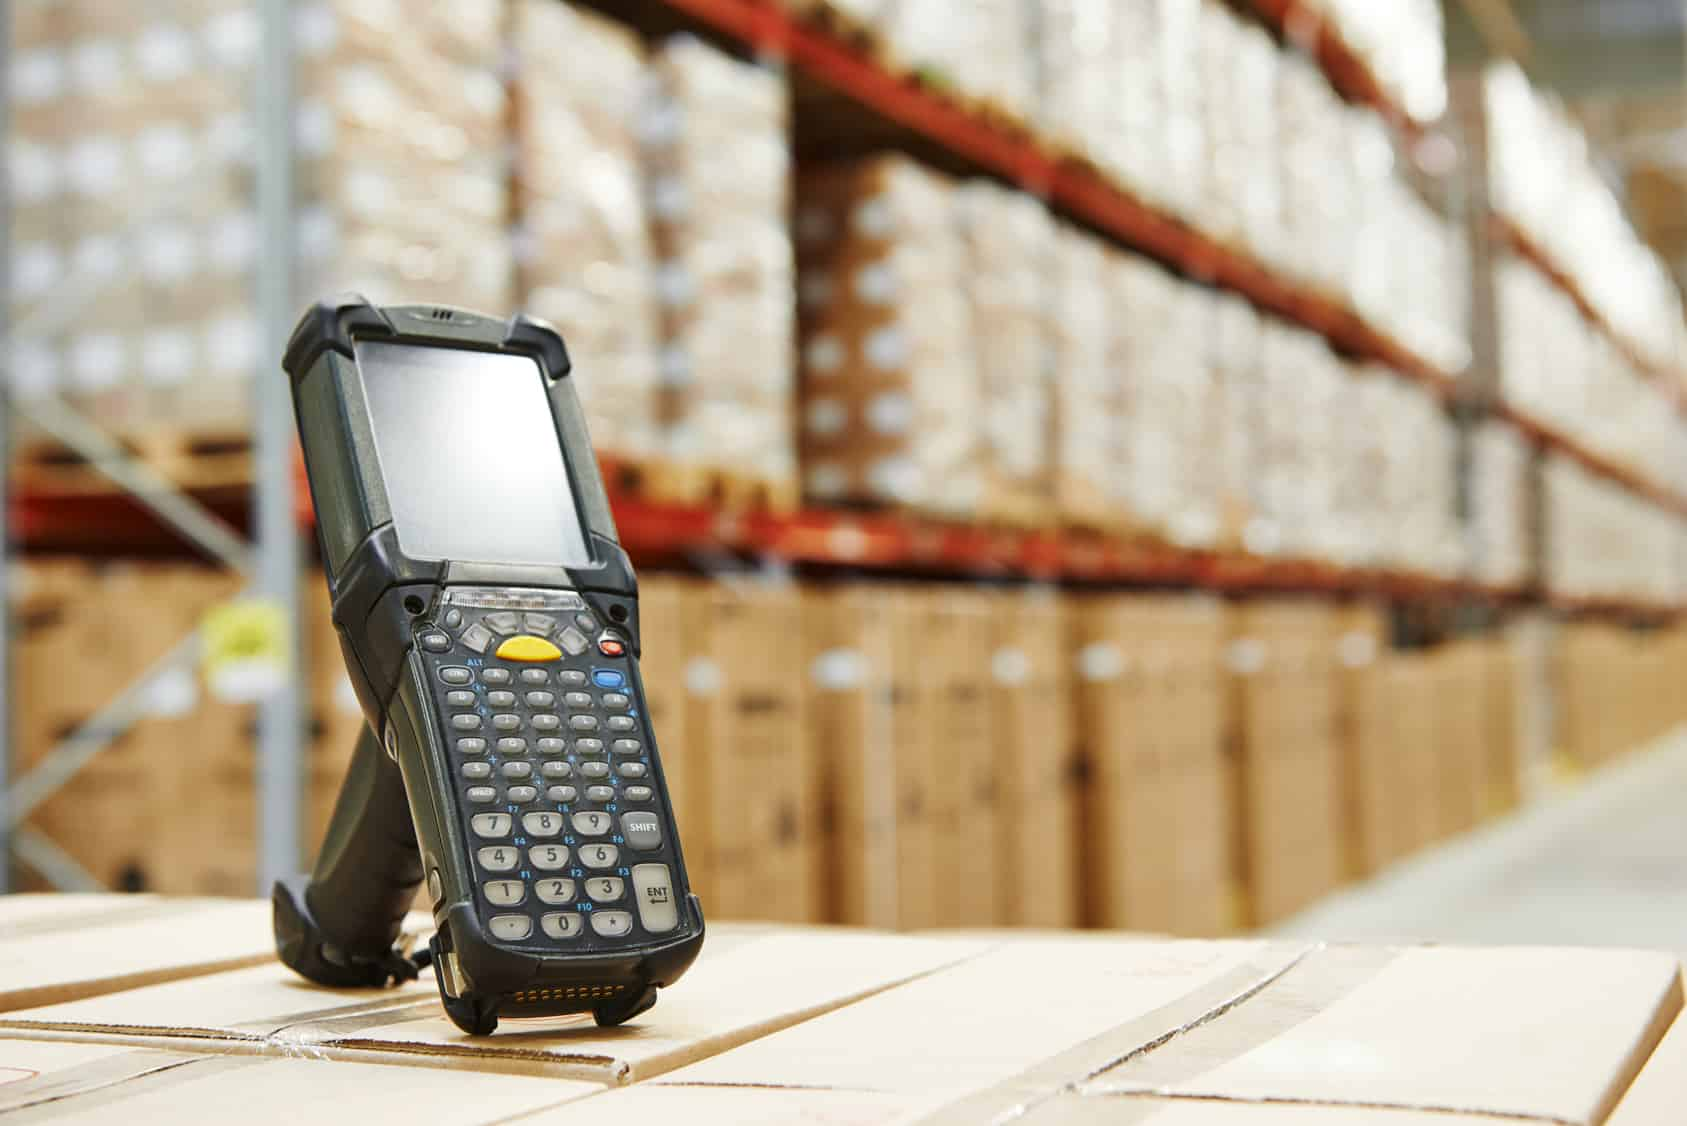 A hand scanner being used in a warehouse.